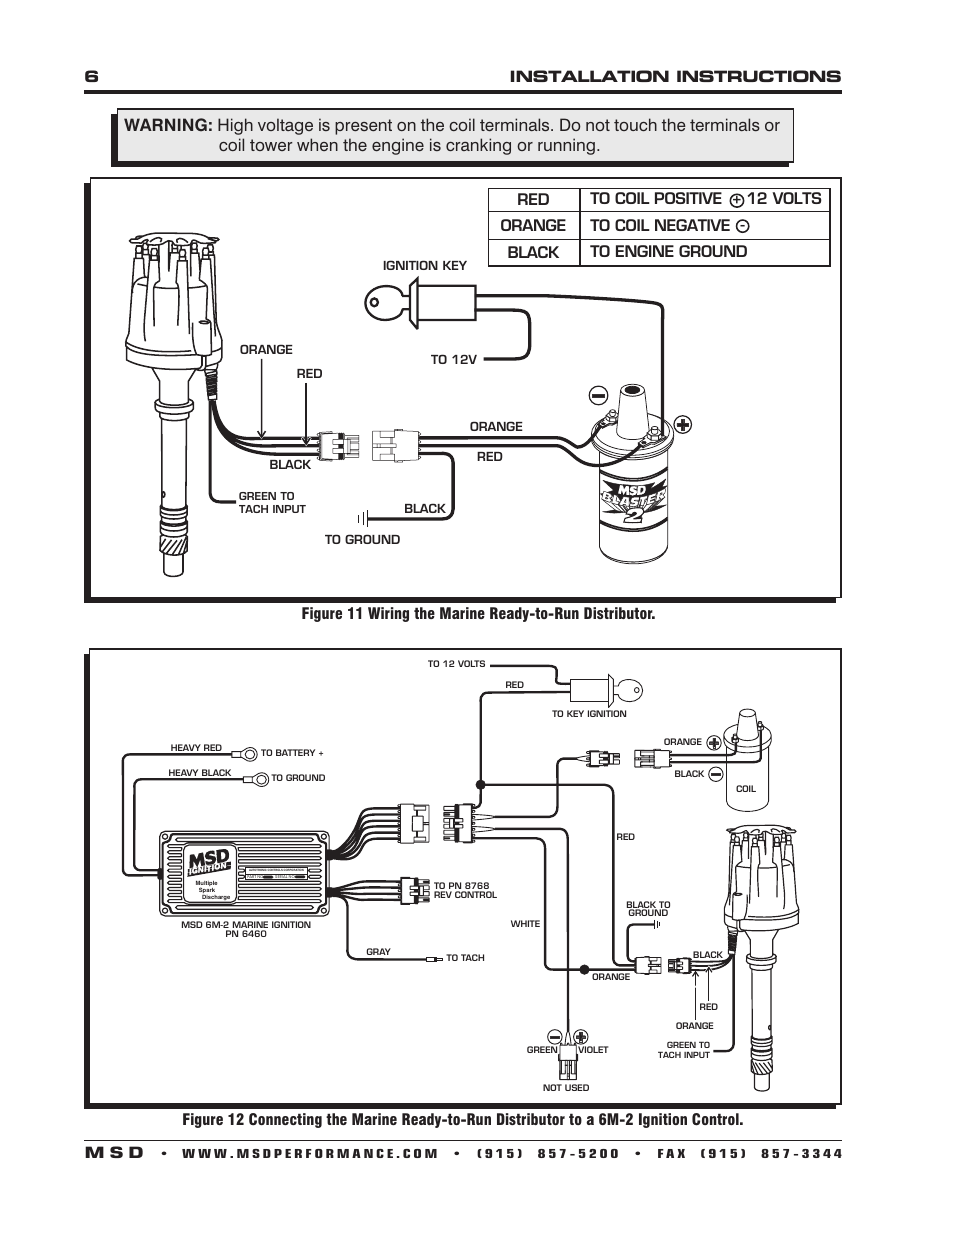 medium resolution of ford 460 msd distributor wiring wiring diagram schematic ford 460 msd distributor wiring